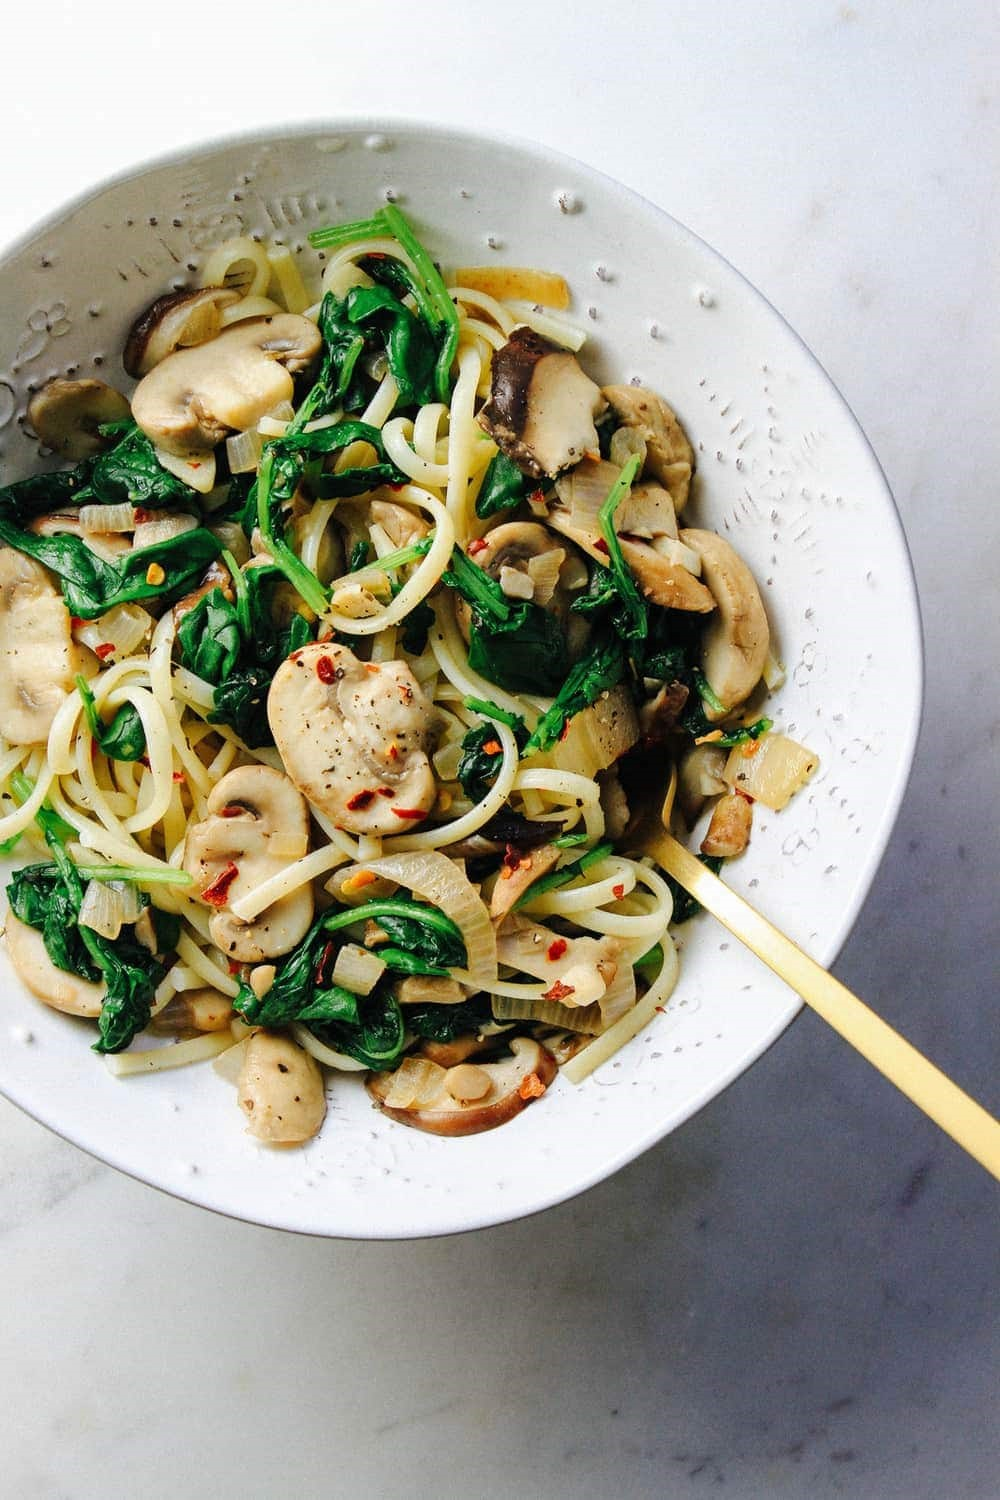 Cambodian greens with oyster mushrooms and konjac noodles